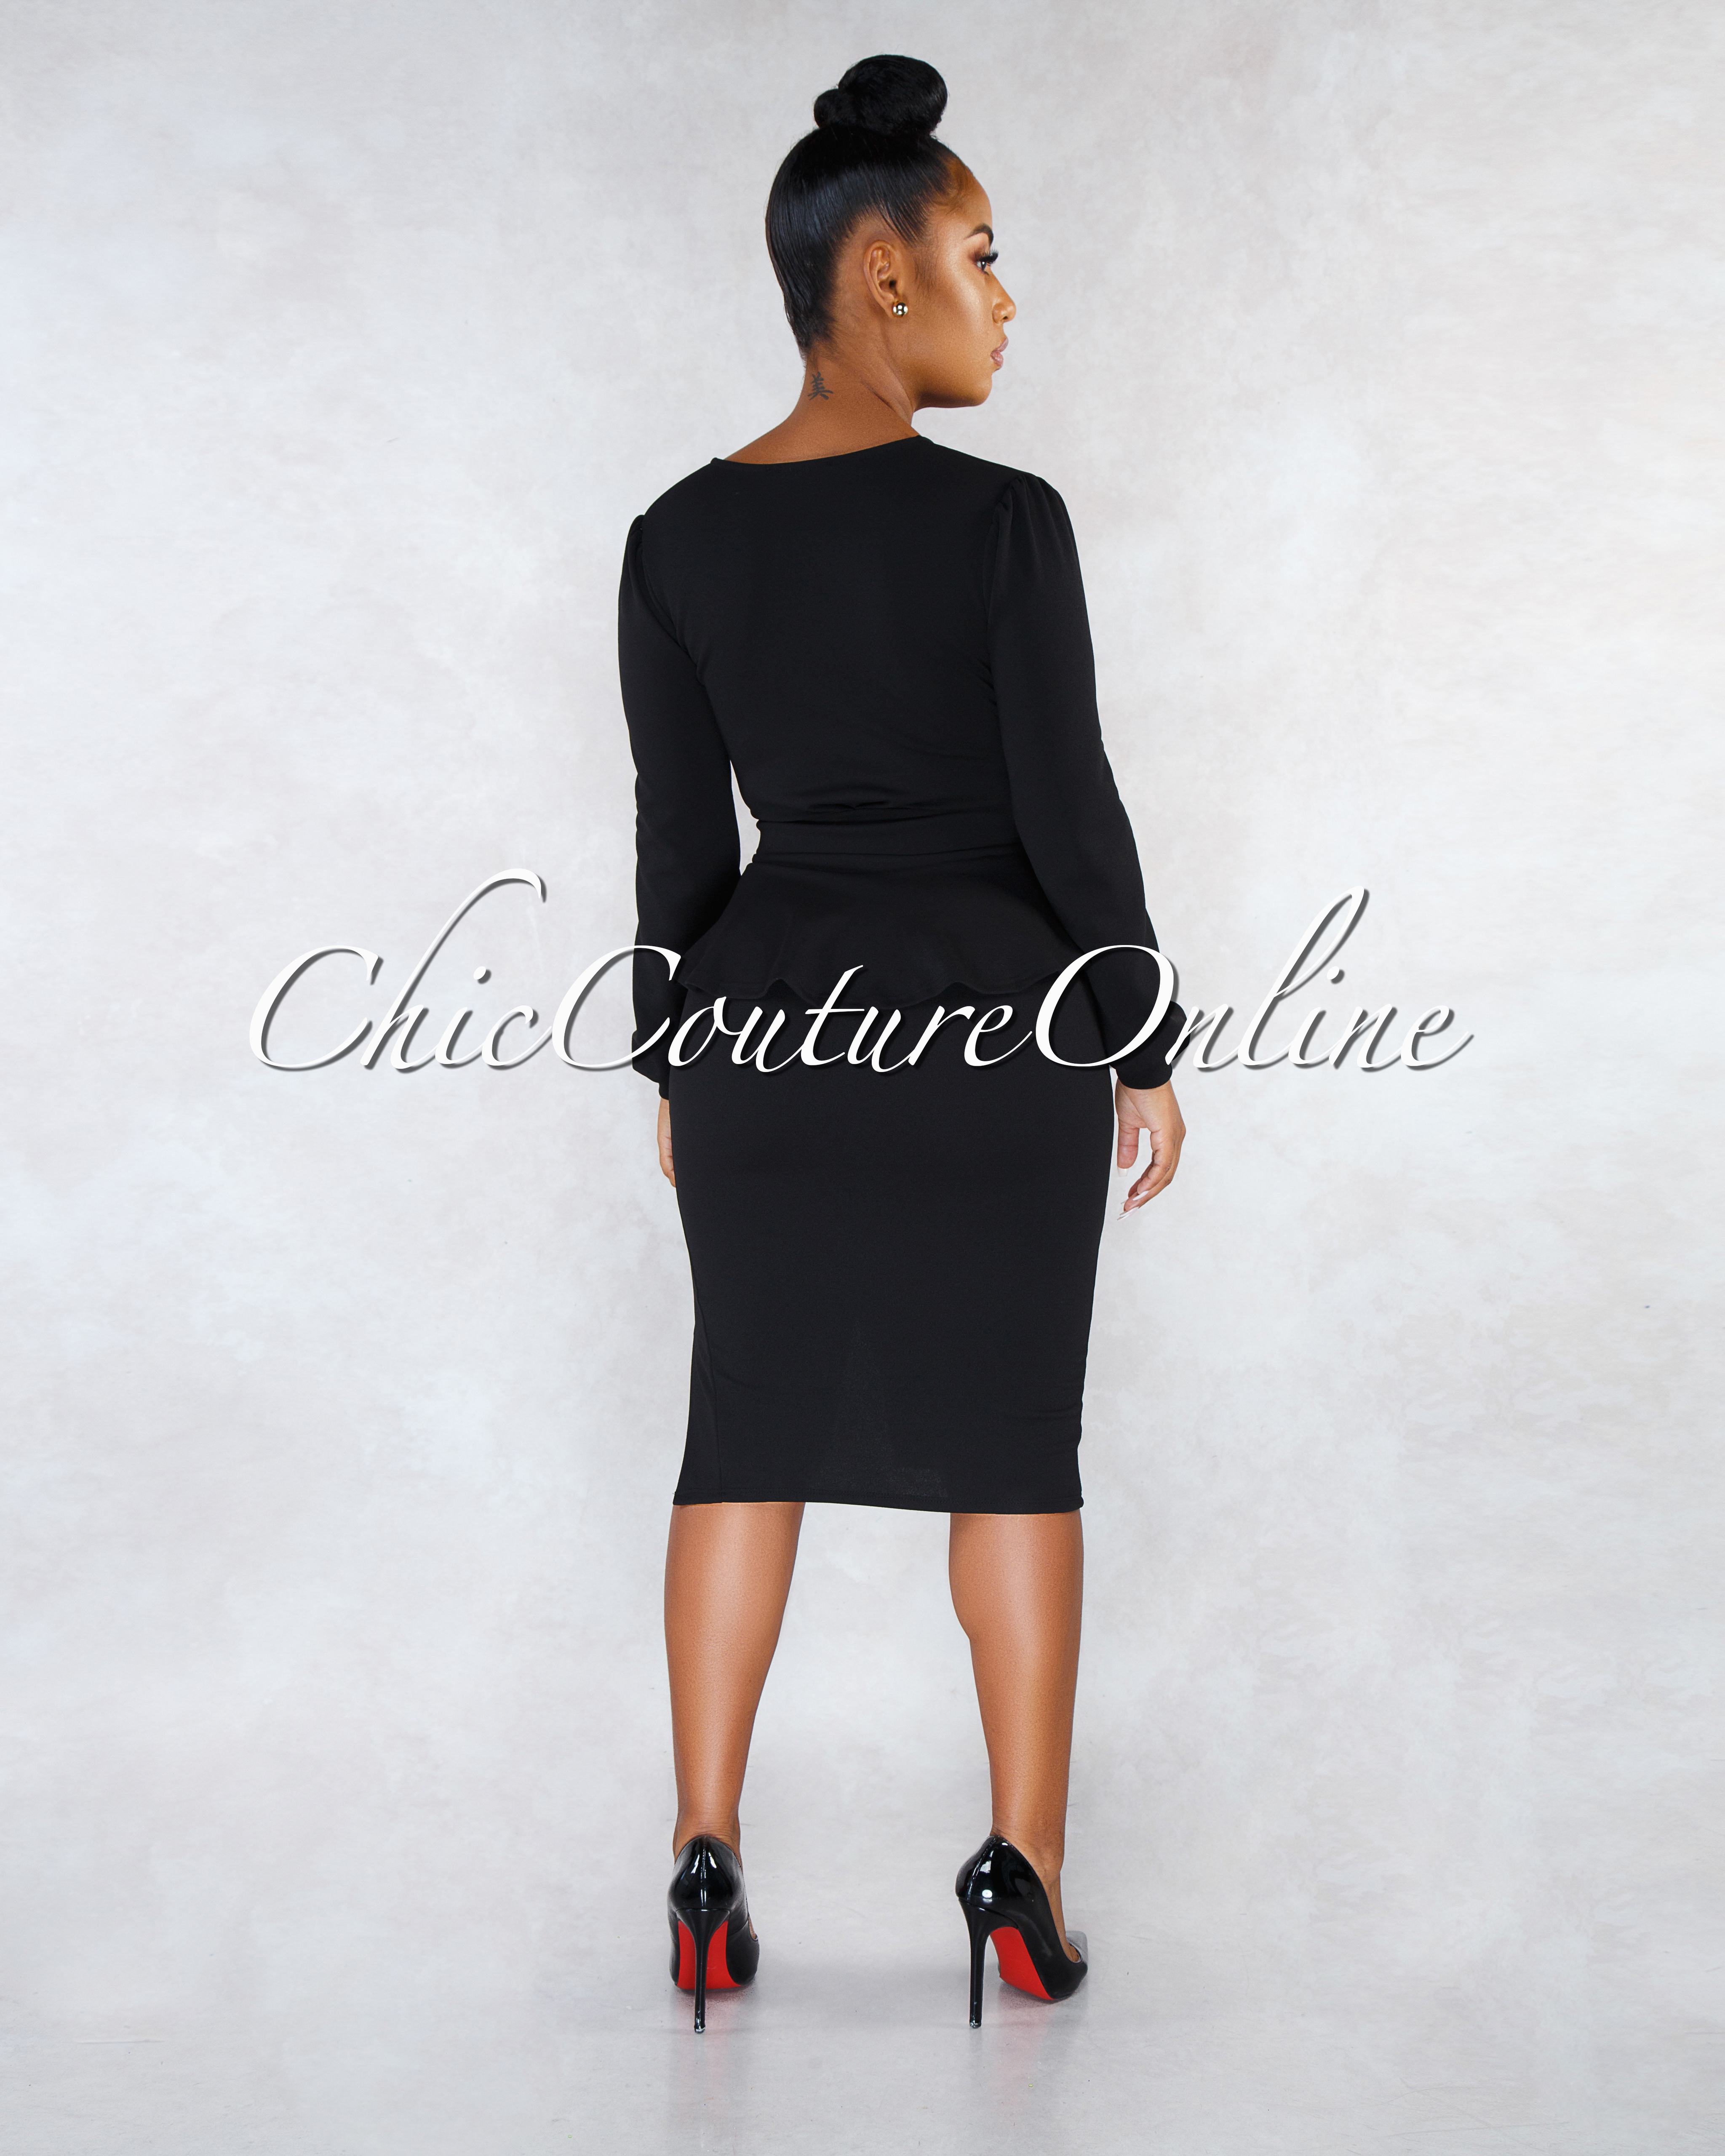 Chrissy Black Front Tie Top Pencil Skirt Two Piece Set